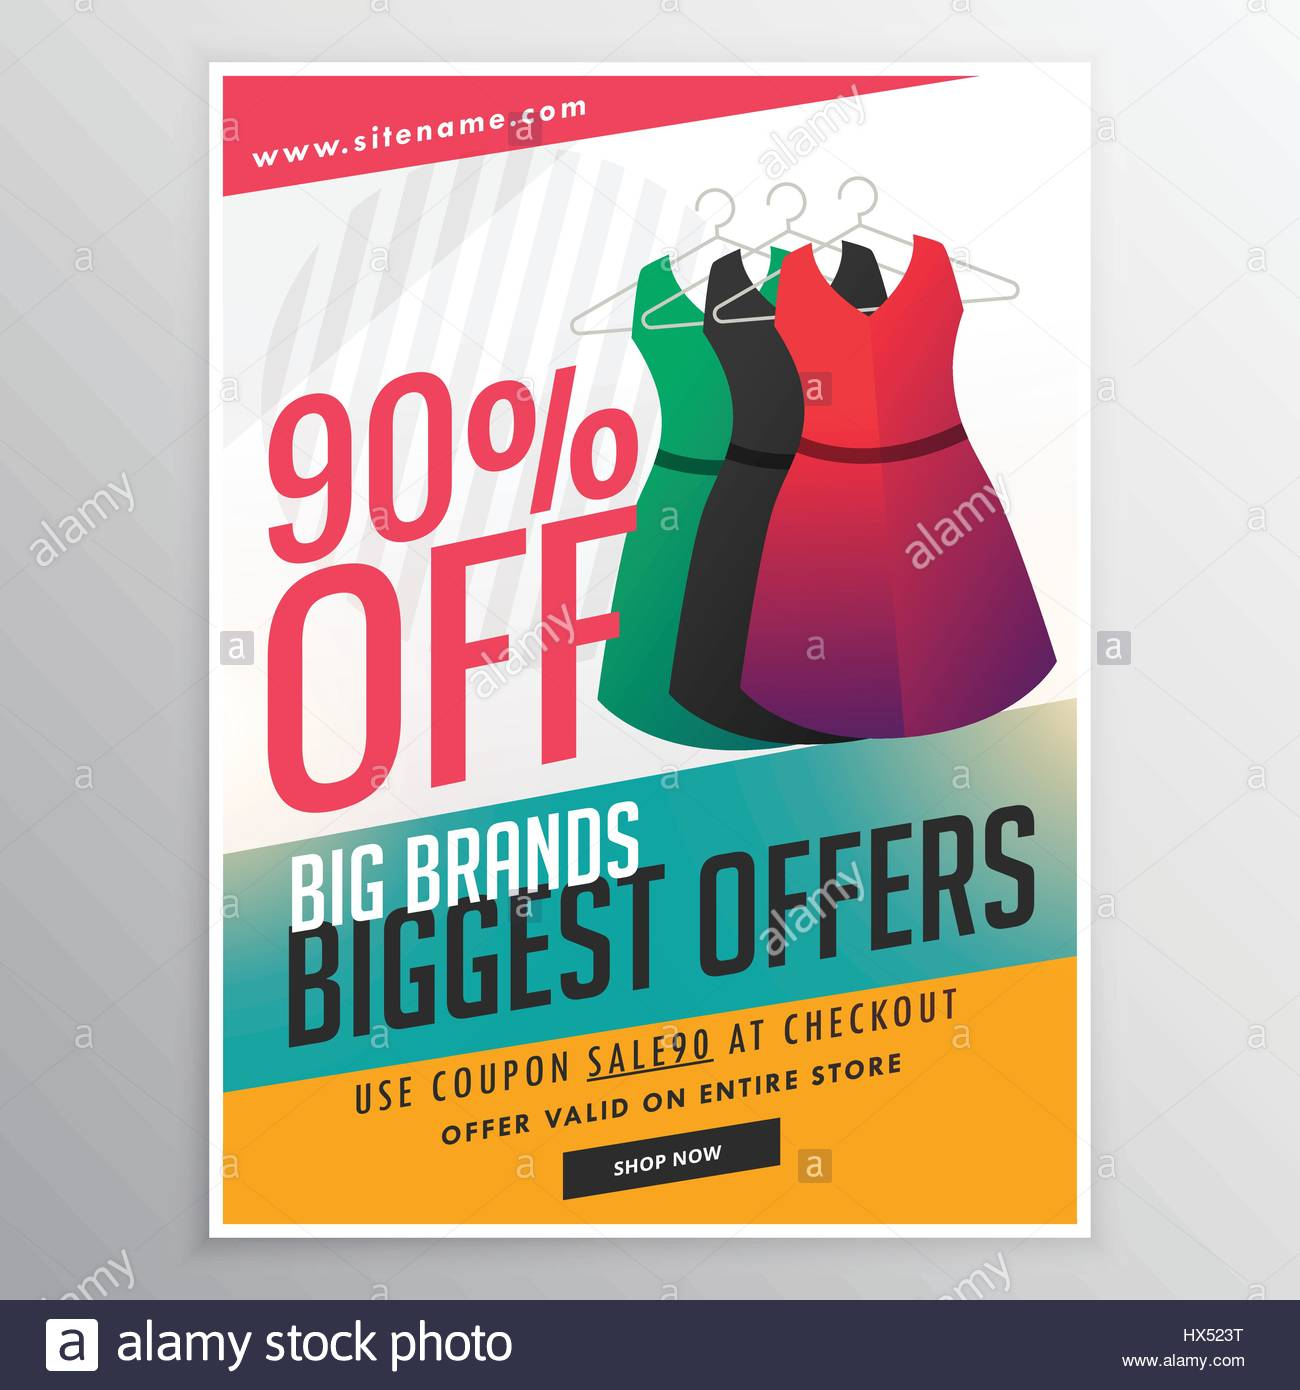 Fashion Sale Discount Promotional Brochure Flyer Template With Dress  Illustration And Colorful Shapes  Coupon Flyer Template